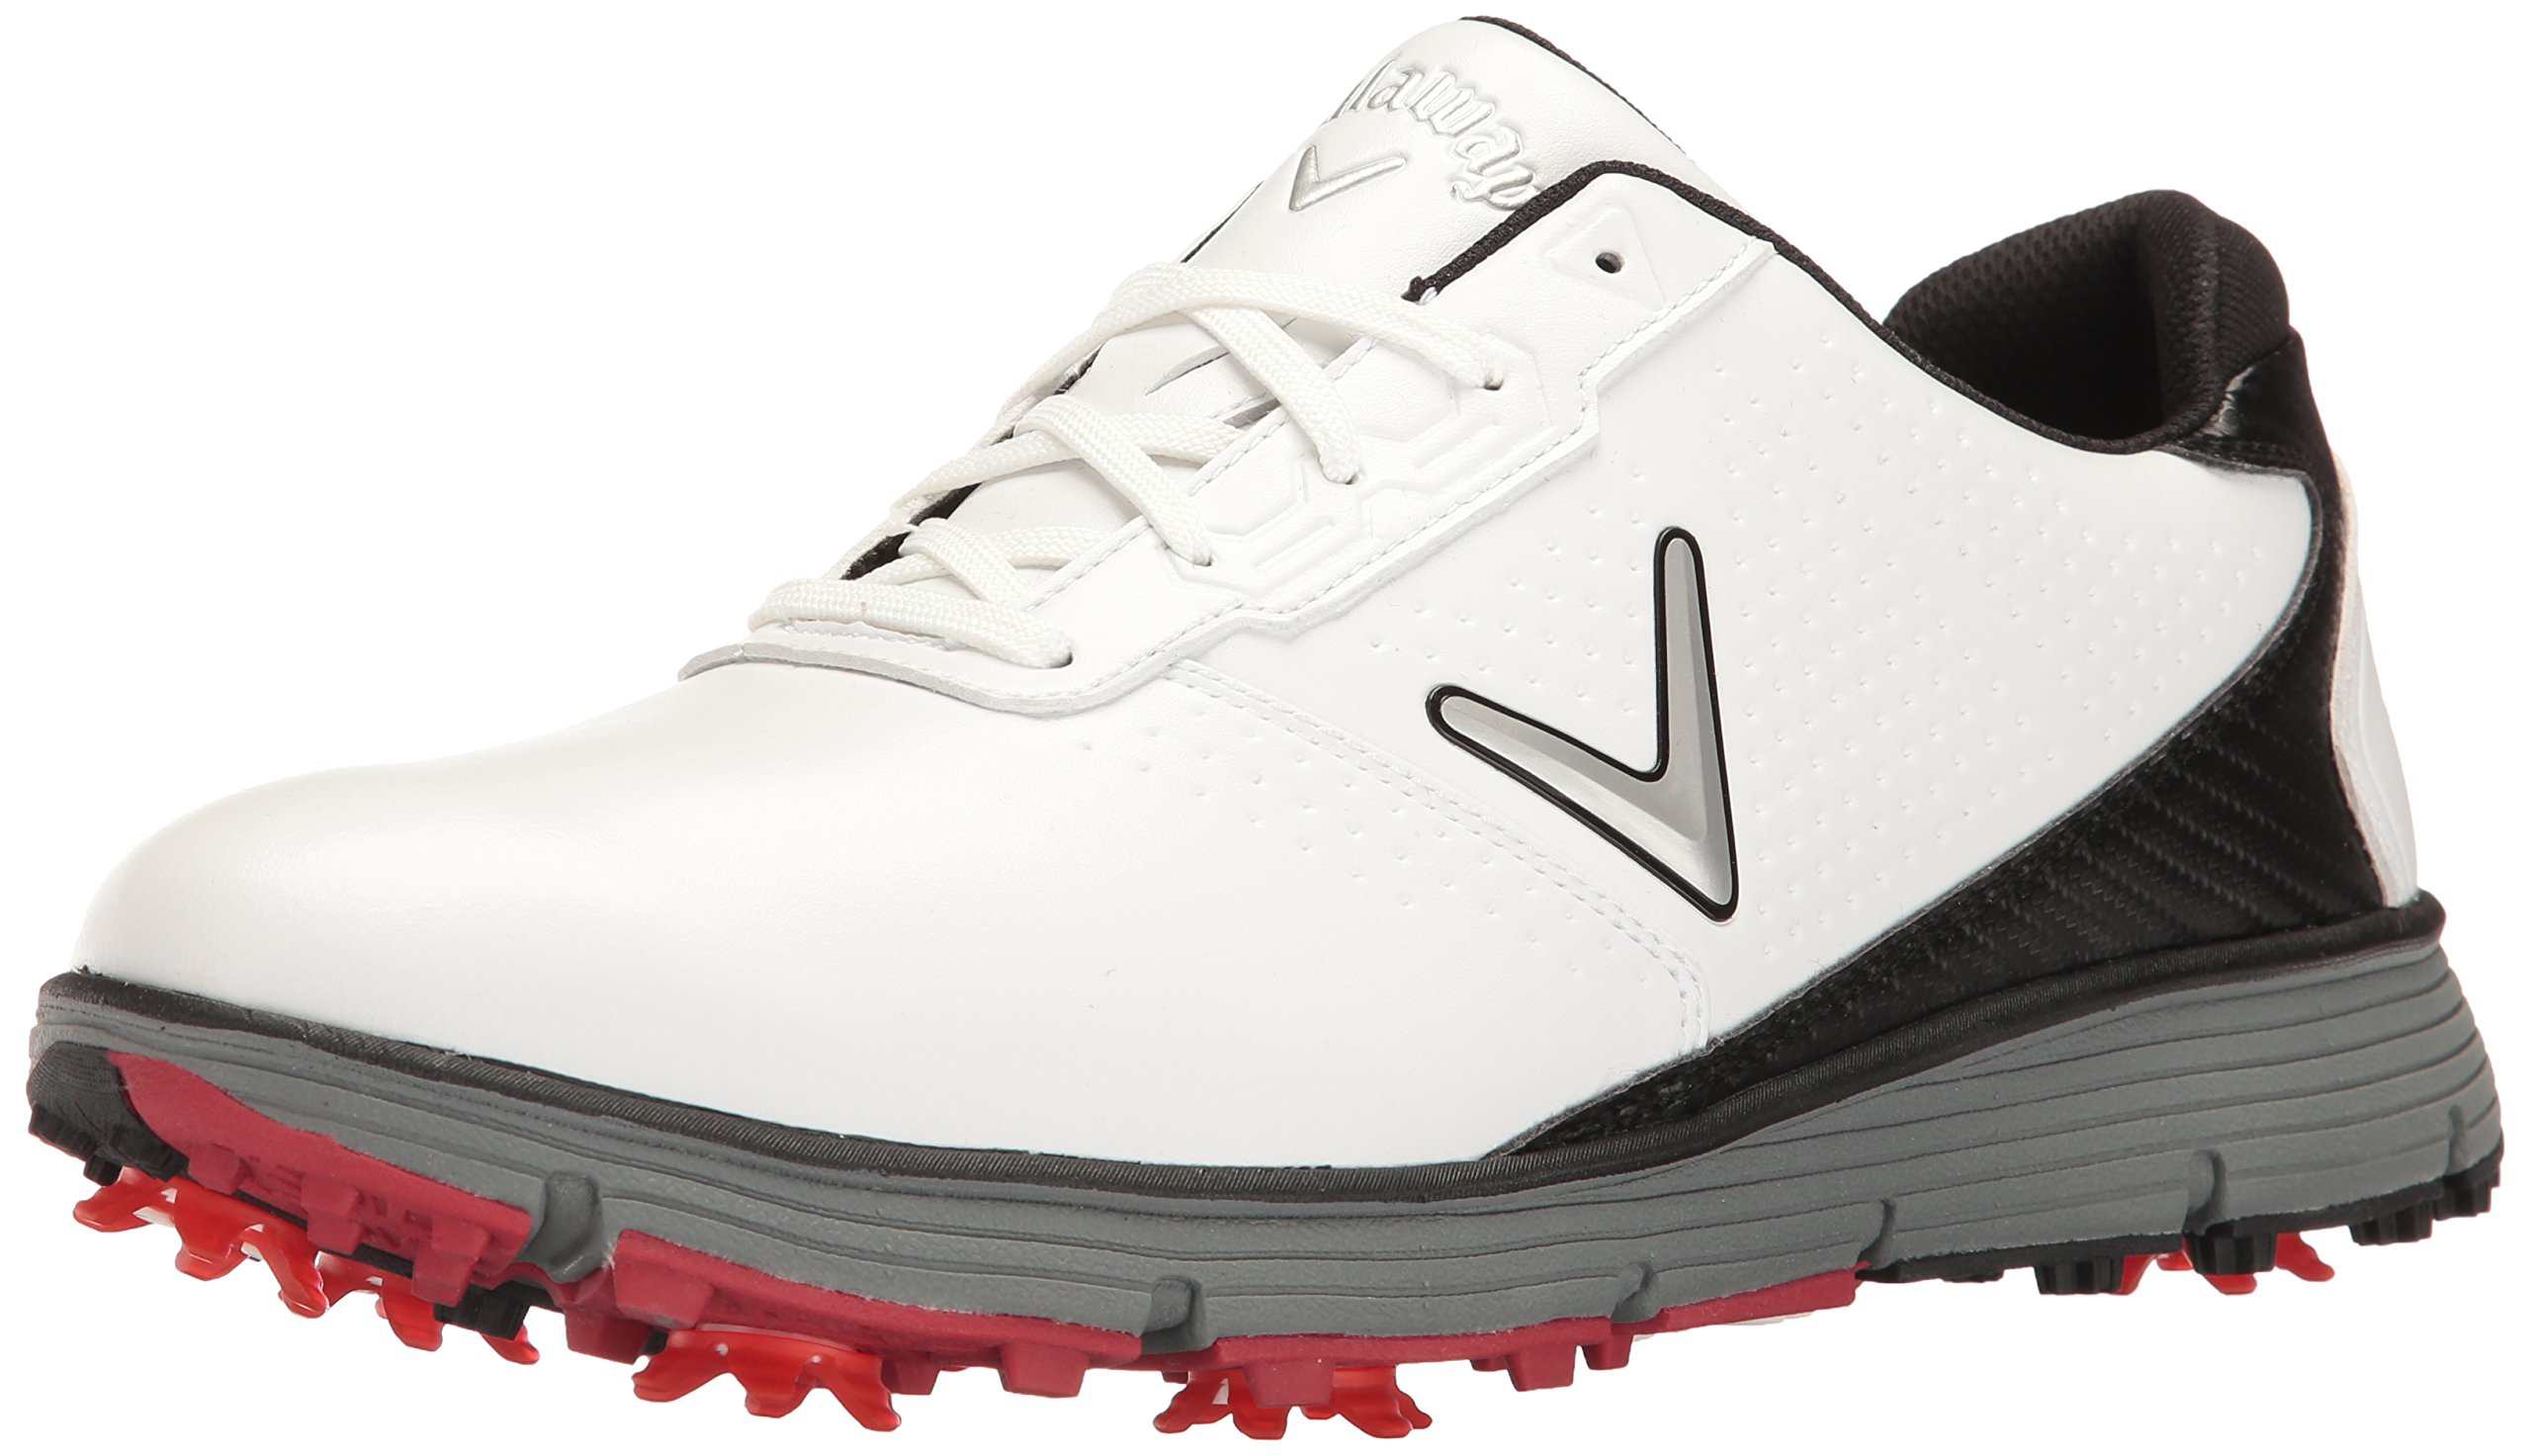 Callaway Men's Balboa TRX Golf Shoe, White/Black, 14 D US by Callaway